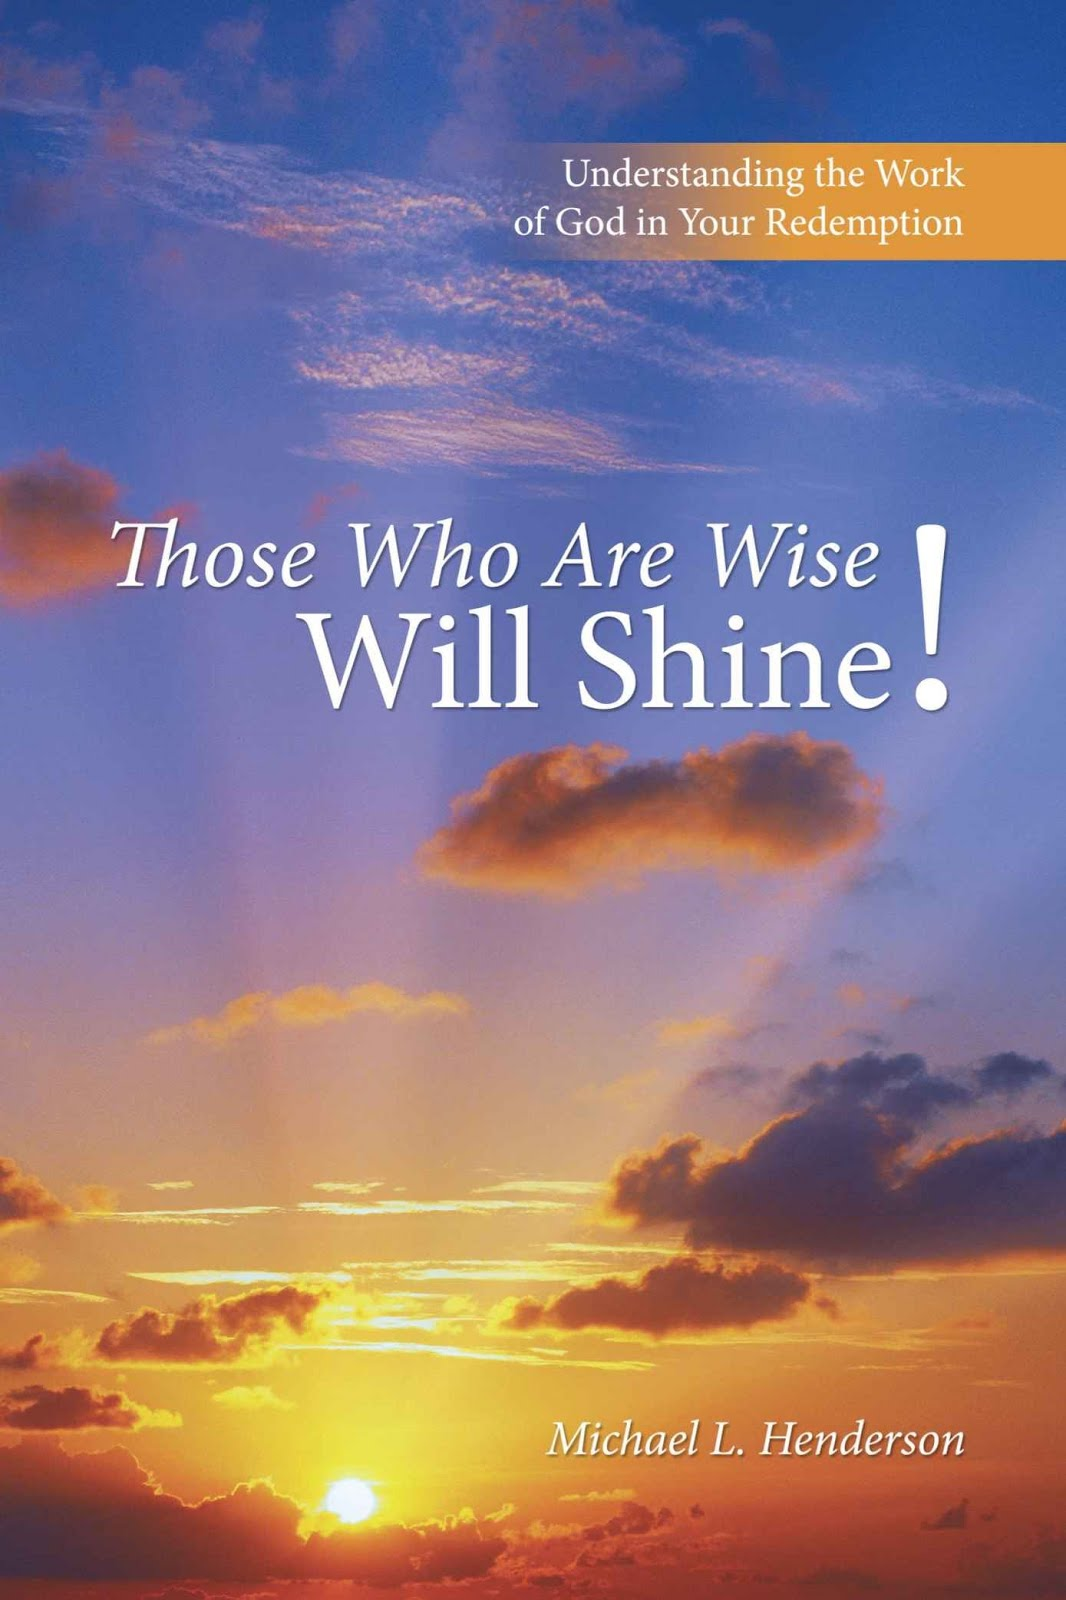 Those Who Are Wise Will Shine